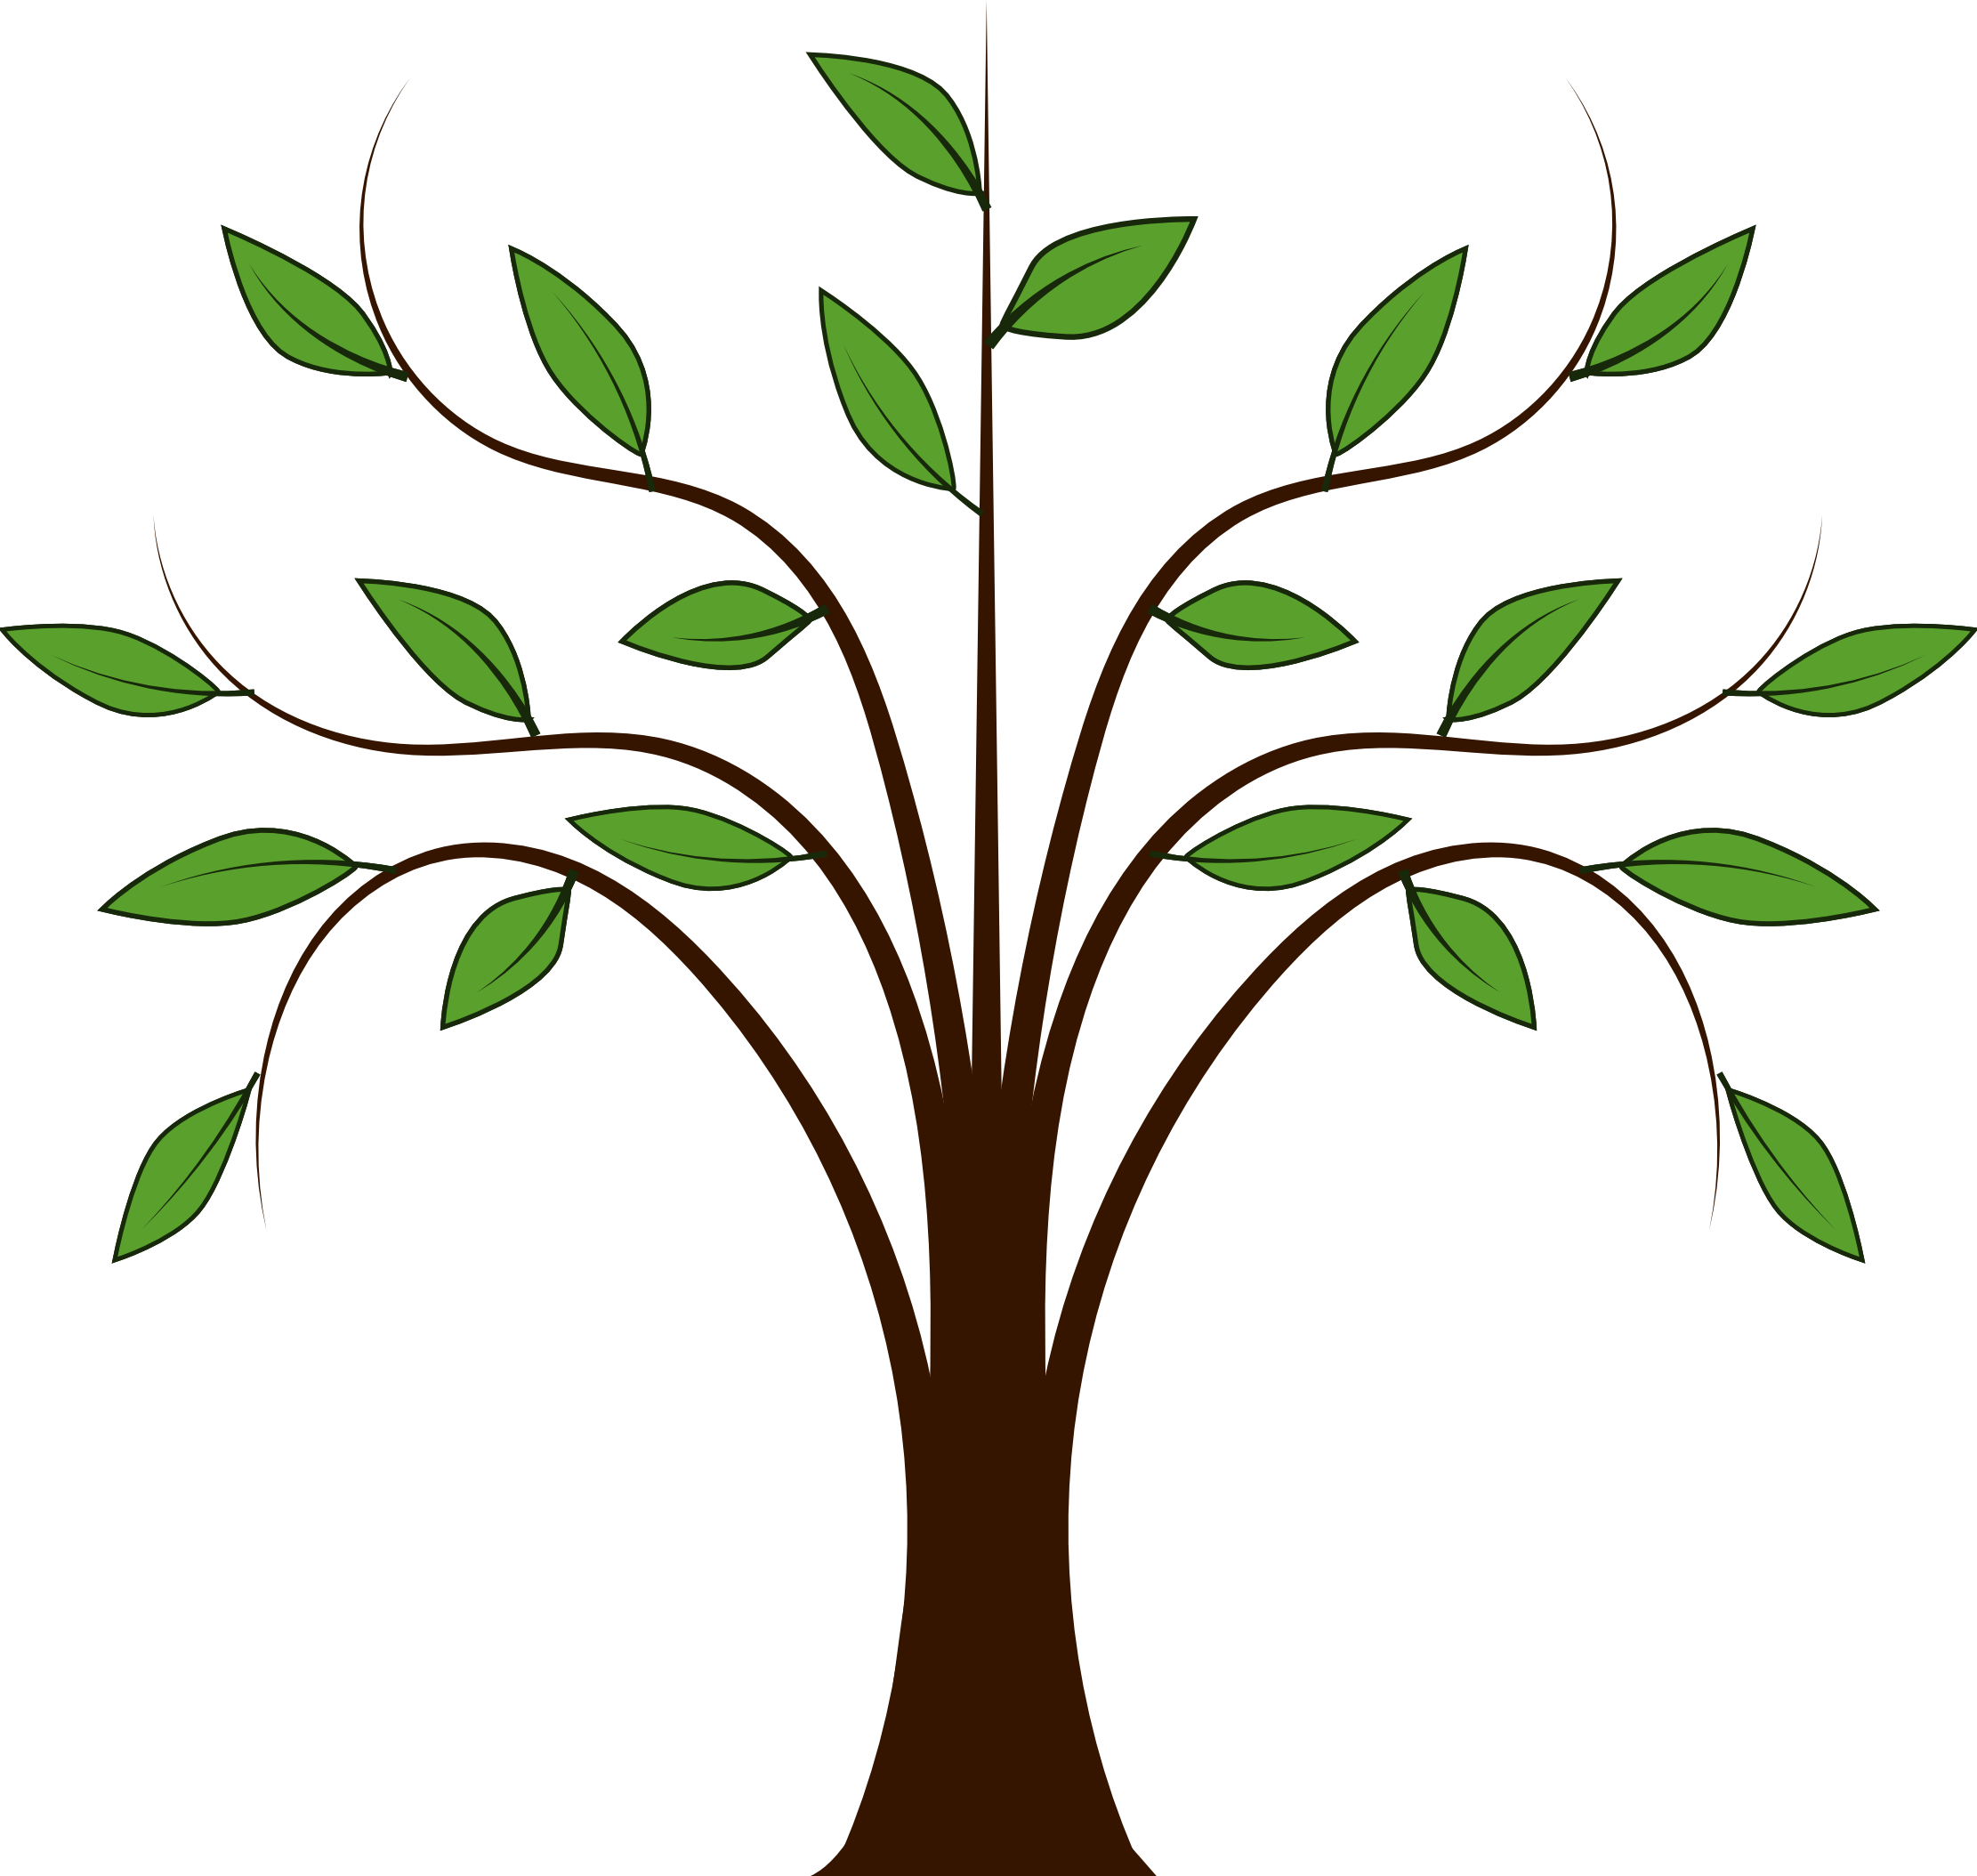 Purple tree clipart jpg transparent stock Family Tree Clipart at GetDrawings.com | Free for personal use ... jpg transparent stock